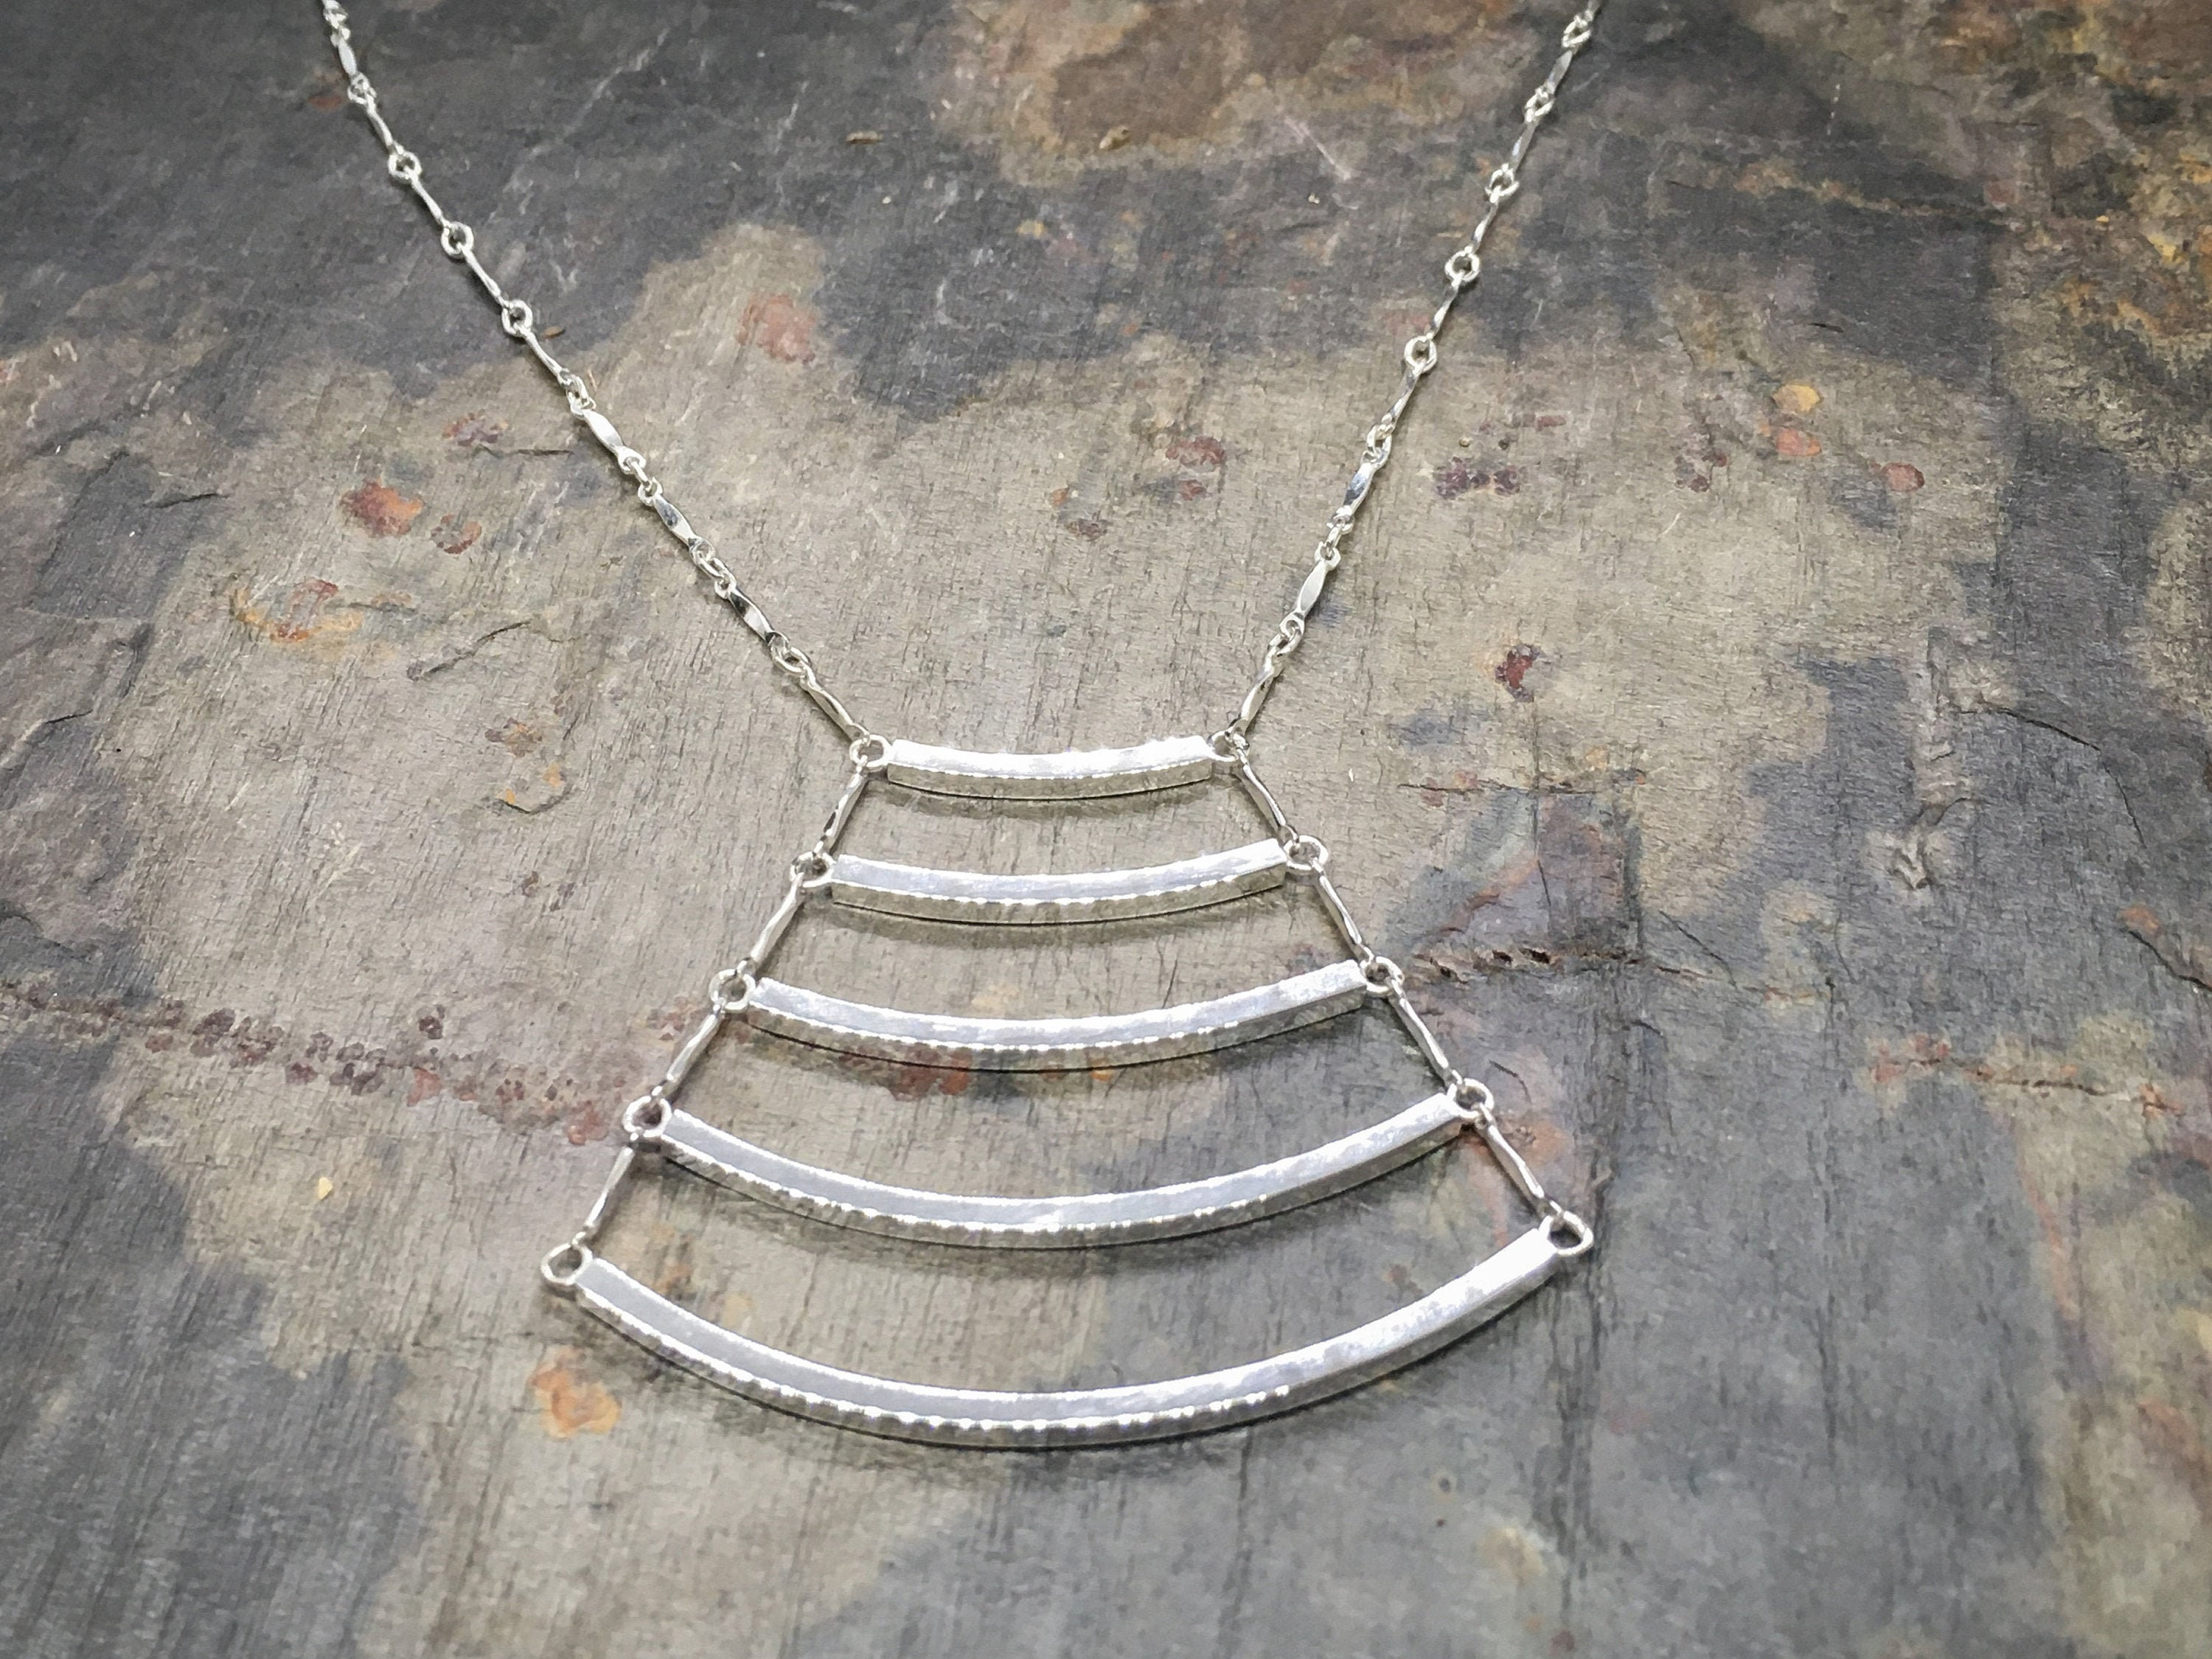 Minimalist Wave Necklace in solid Sterling Silver - Fine jewelry for anniversary gift, gift for mom, birthday gift or gift for girlfriend.